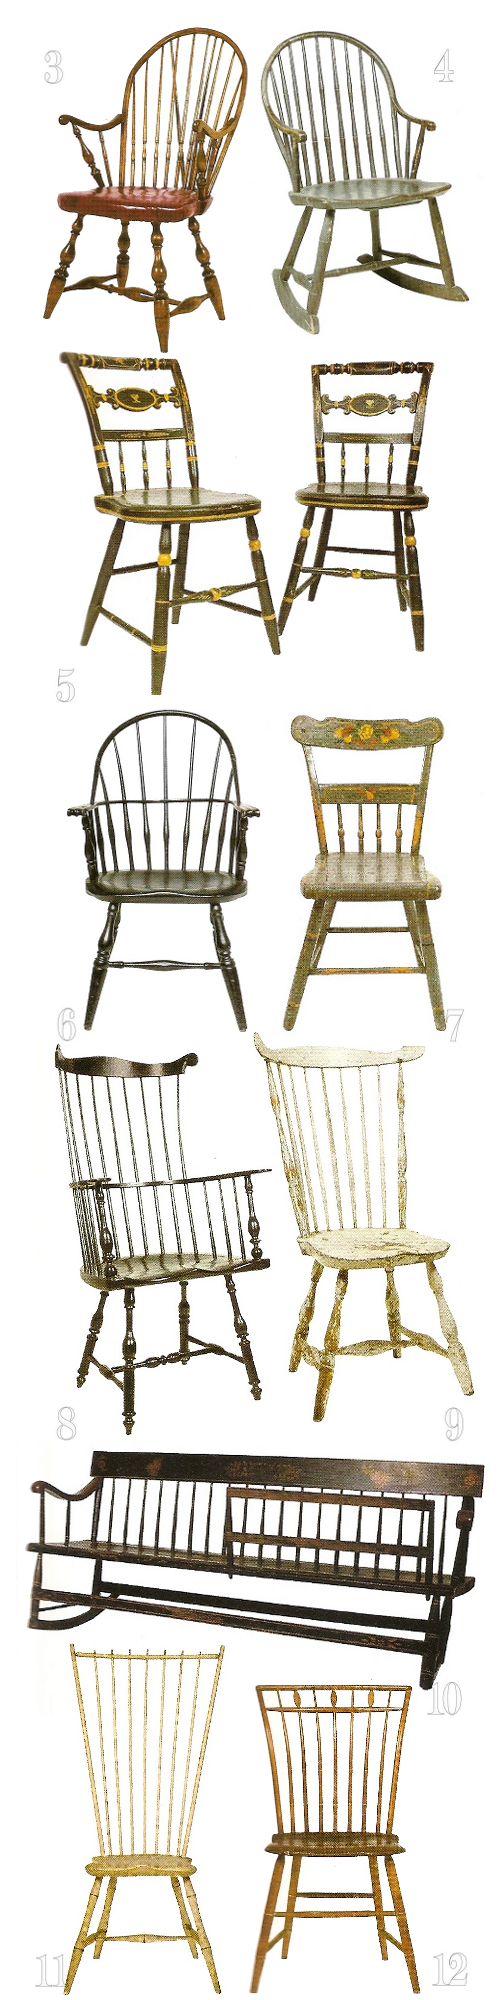 Windsor Chairs And Bench Identification - Windsor Chairs And Bench Identification Chairs Pinterest